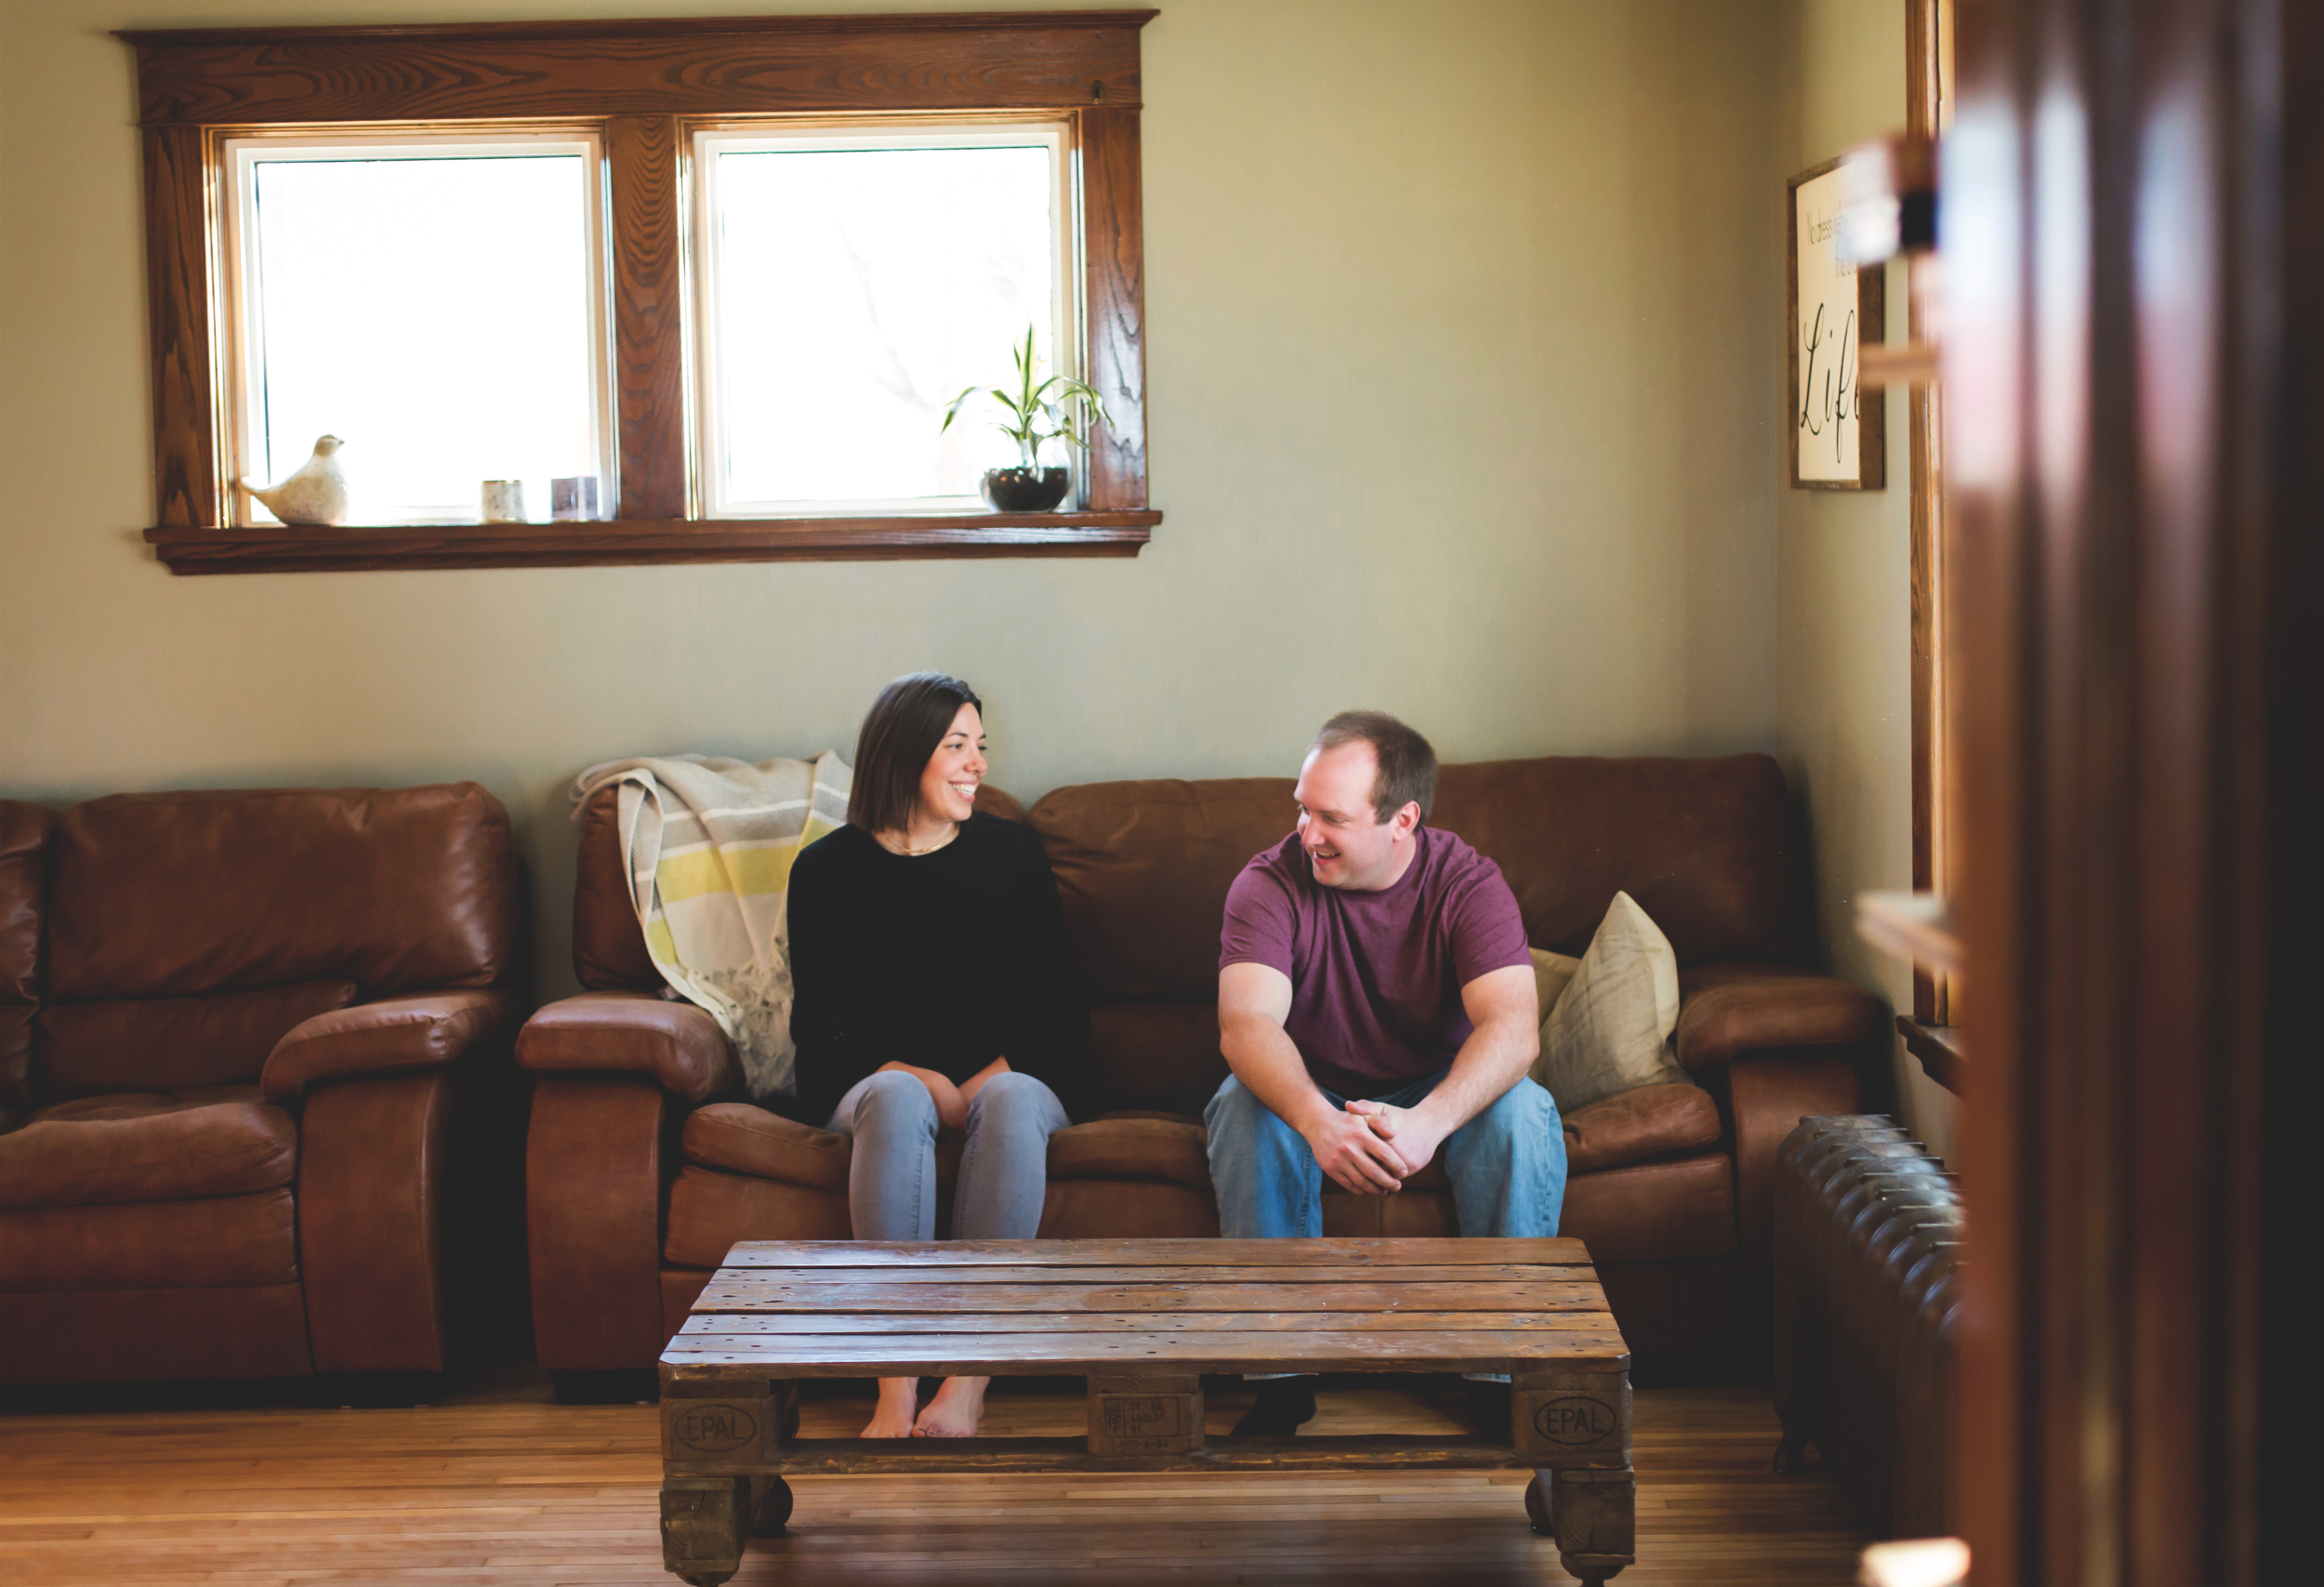 At-Home-Engagement-Session-Photography-Hamilton-Burlington-Niagara-Toronto-Wedding-Photography-Cozy-Engaged-Moments-by-Lauren-Photo-Image-1.png